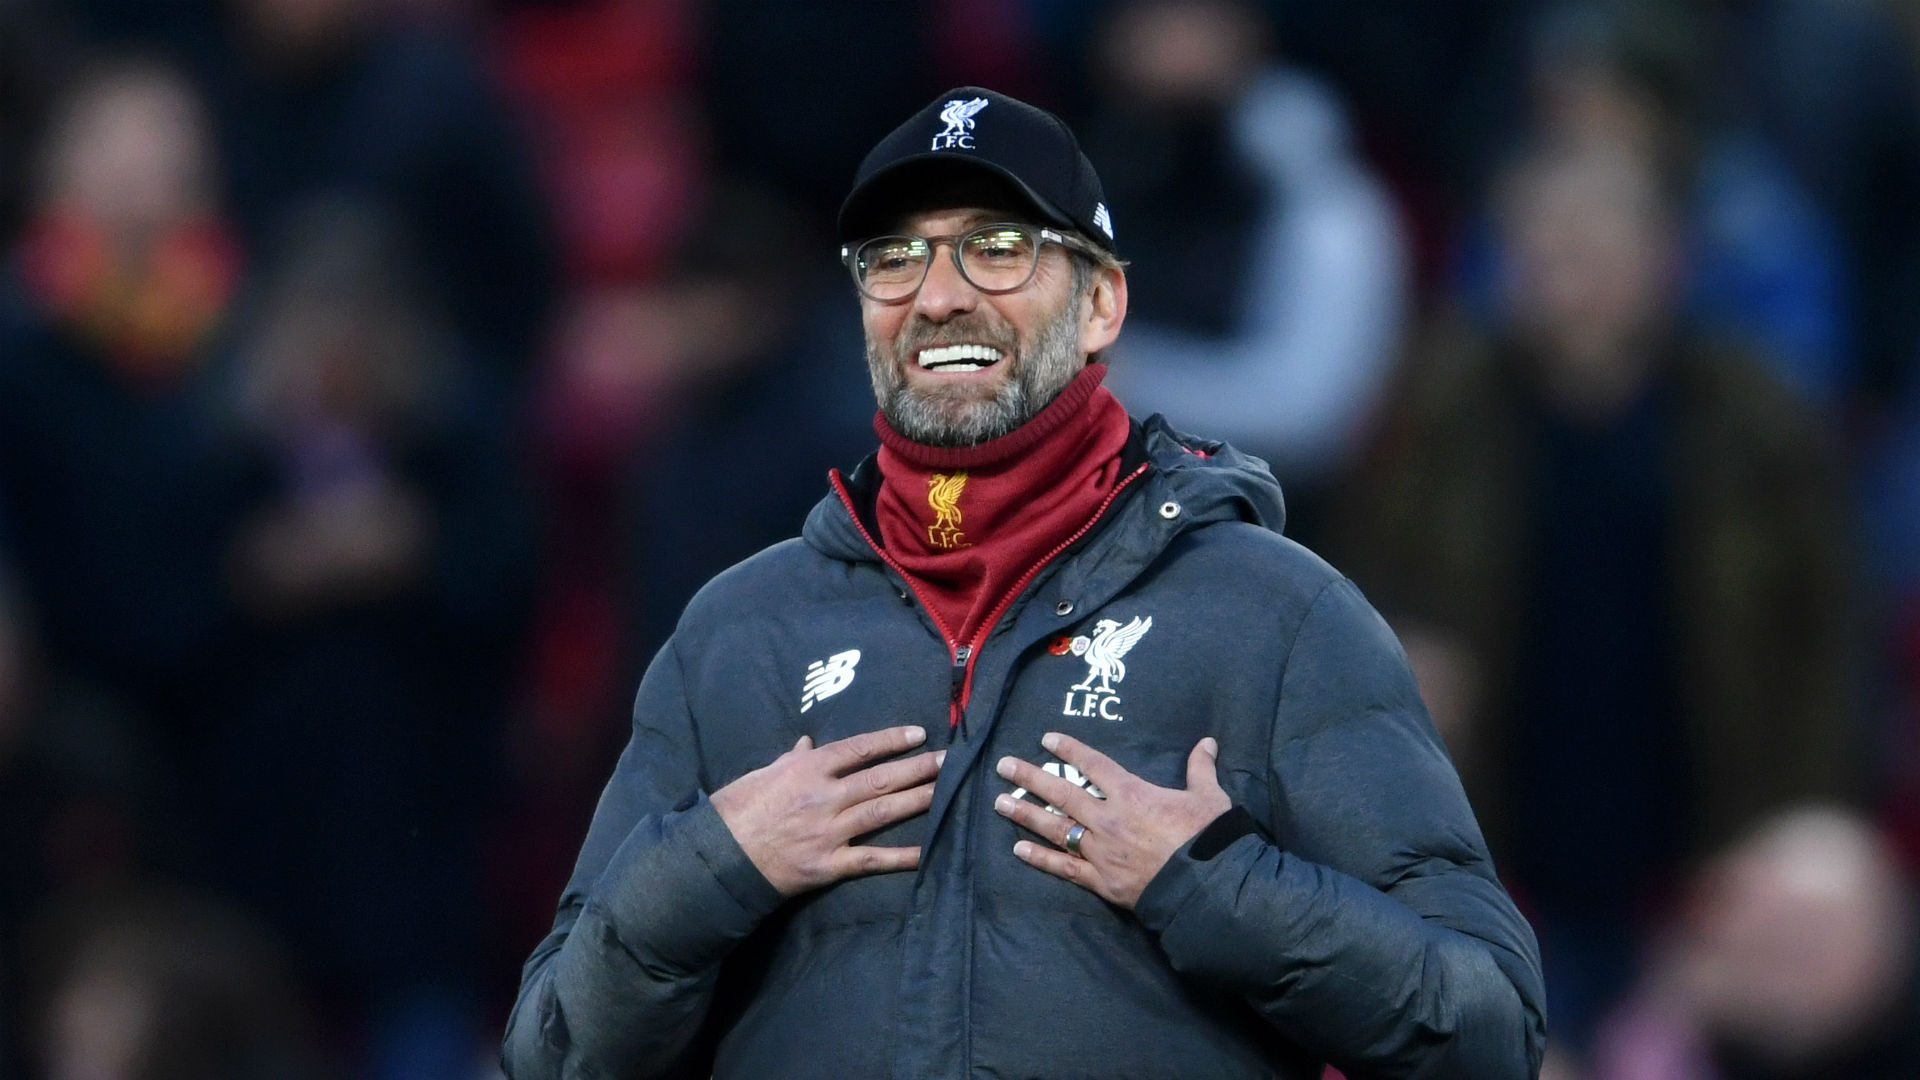 Jürgen Klopp Discusses Liverpool's Chances at 'Special' Club World Cup